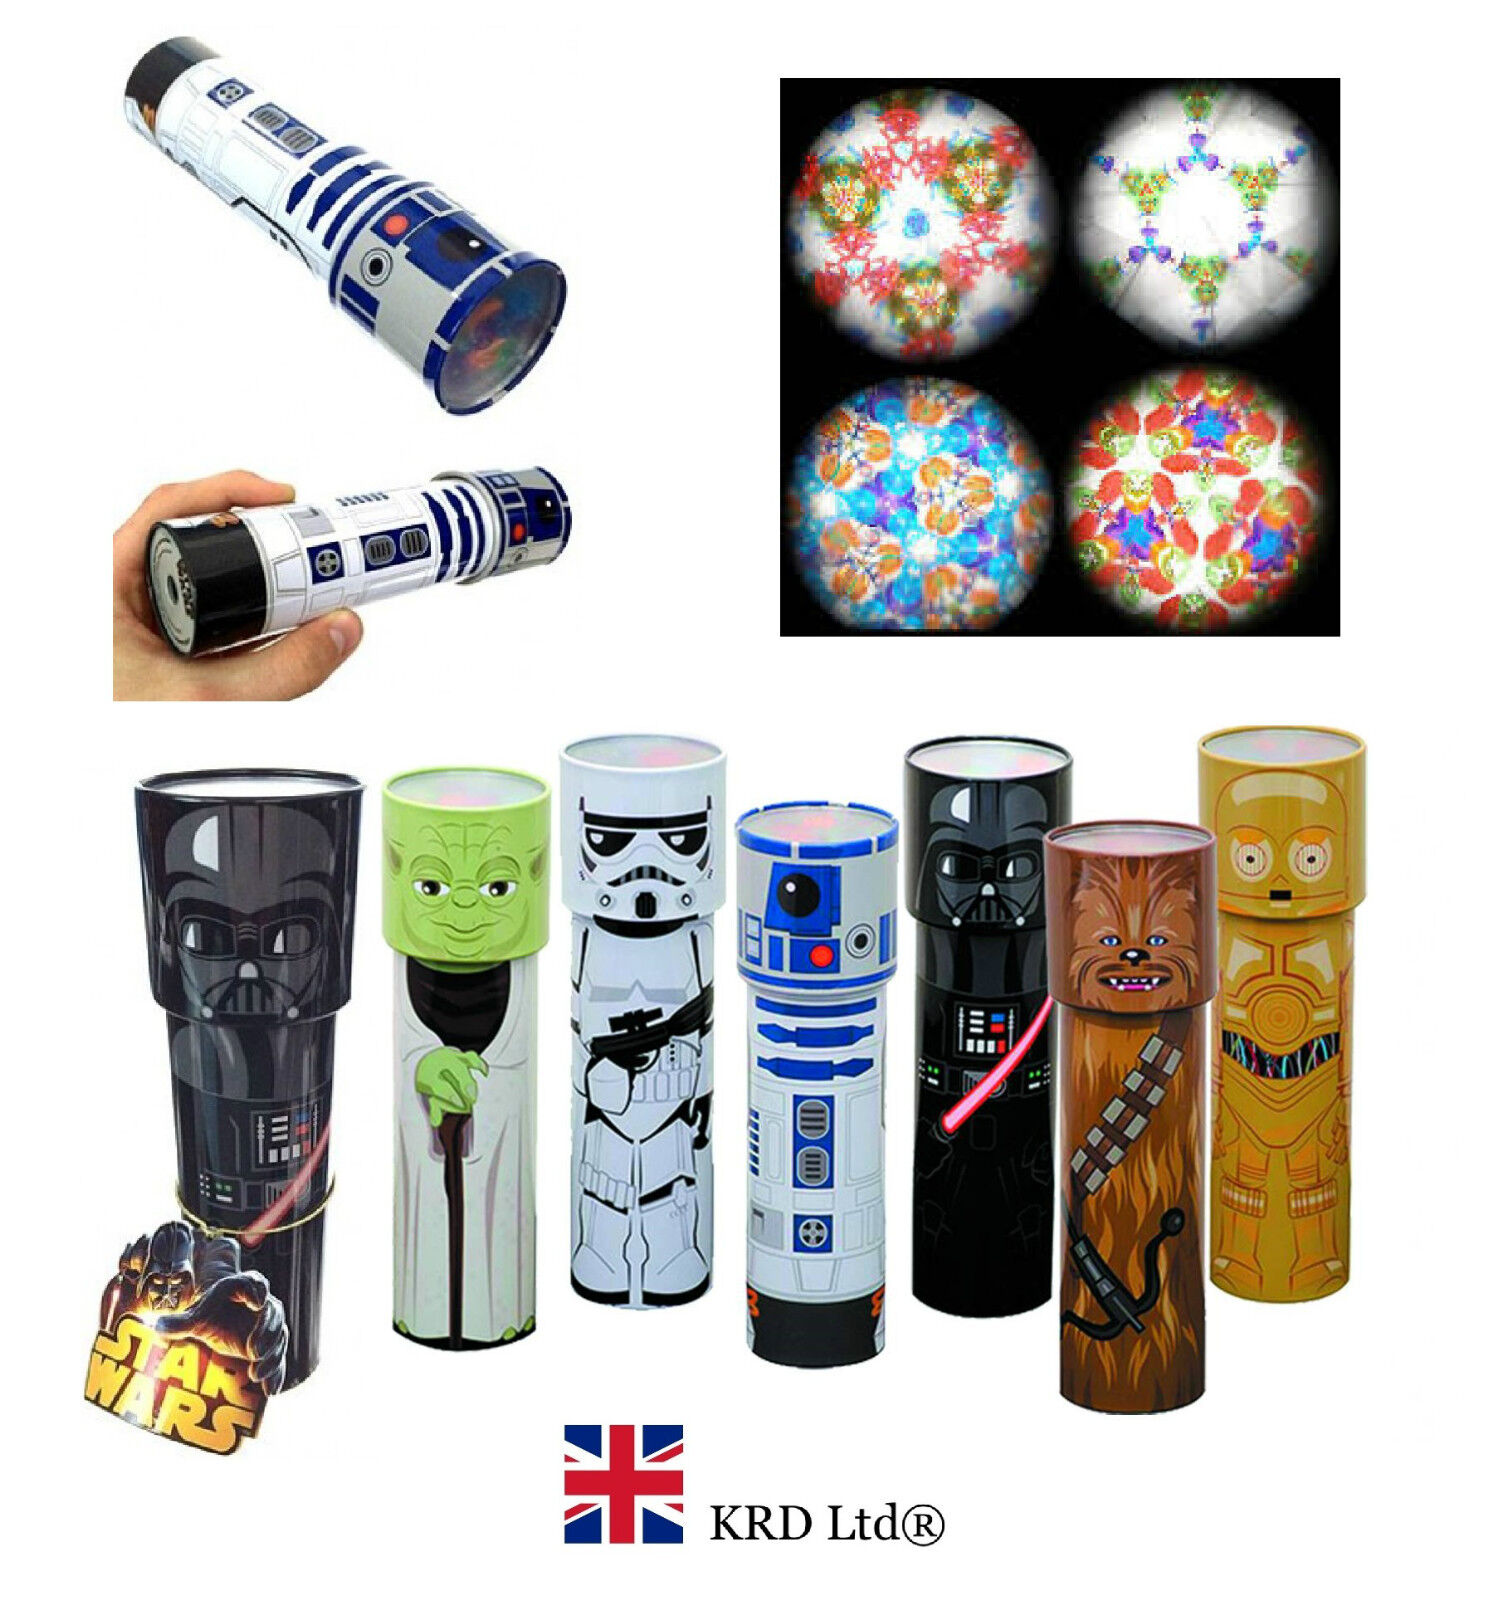 Star Wars Characters Toys : Star wars character kaleidoscope toys kids birthday gift